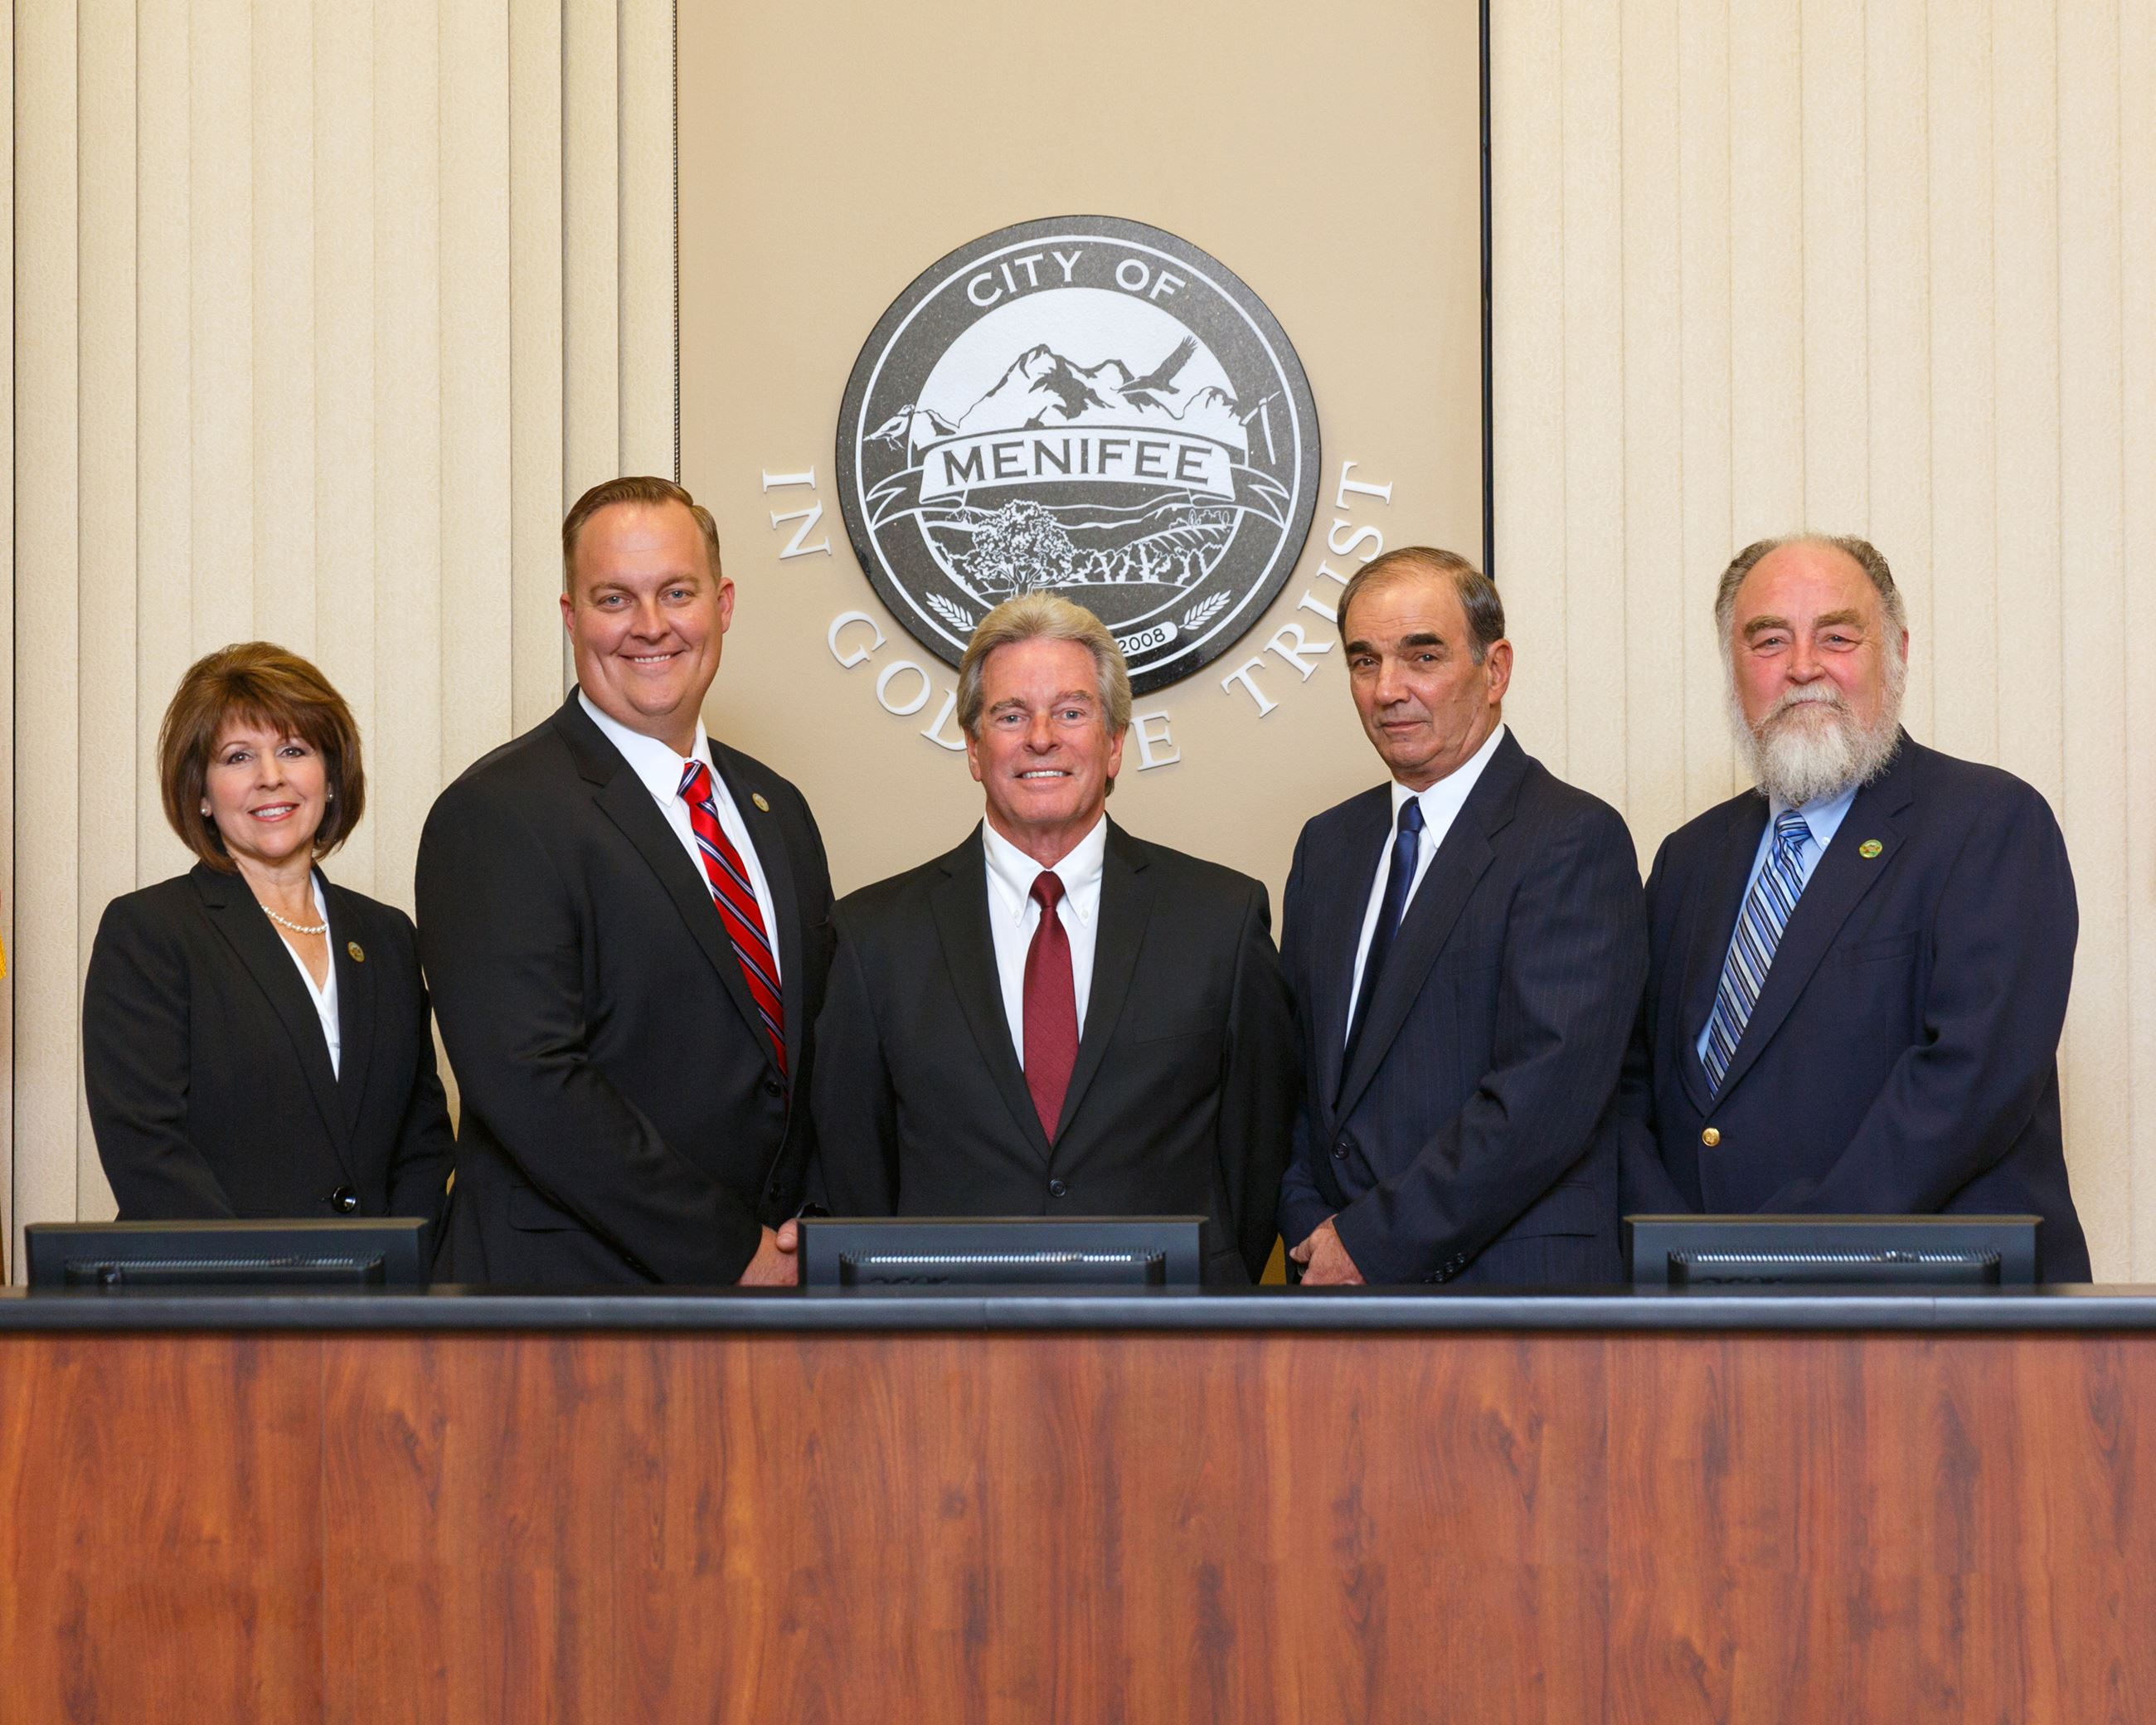 Menifee City Council to terminate city manager